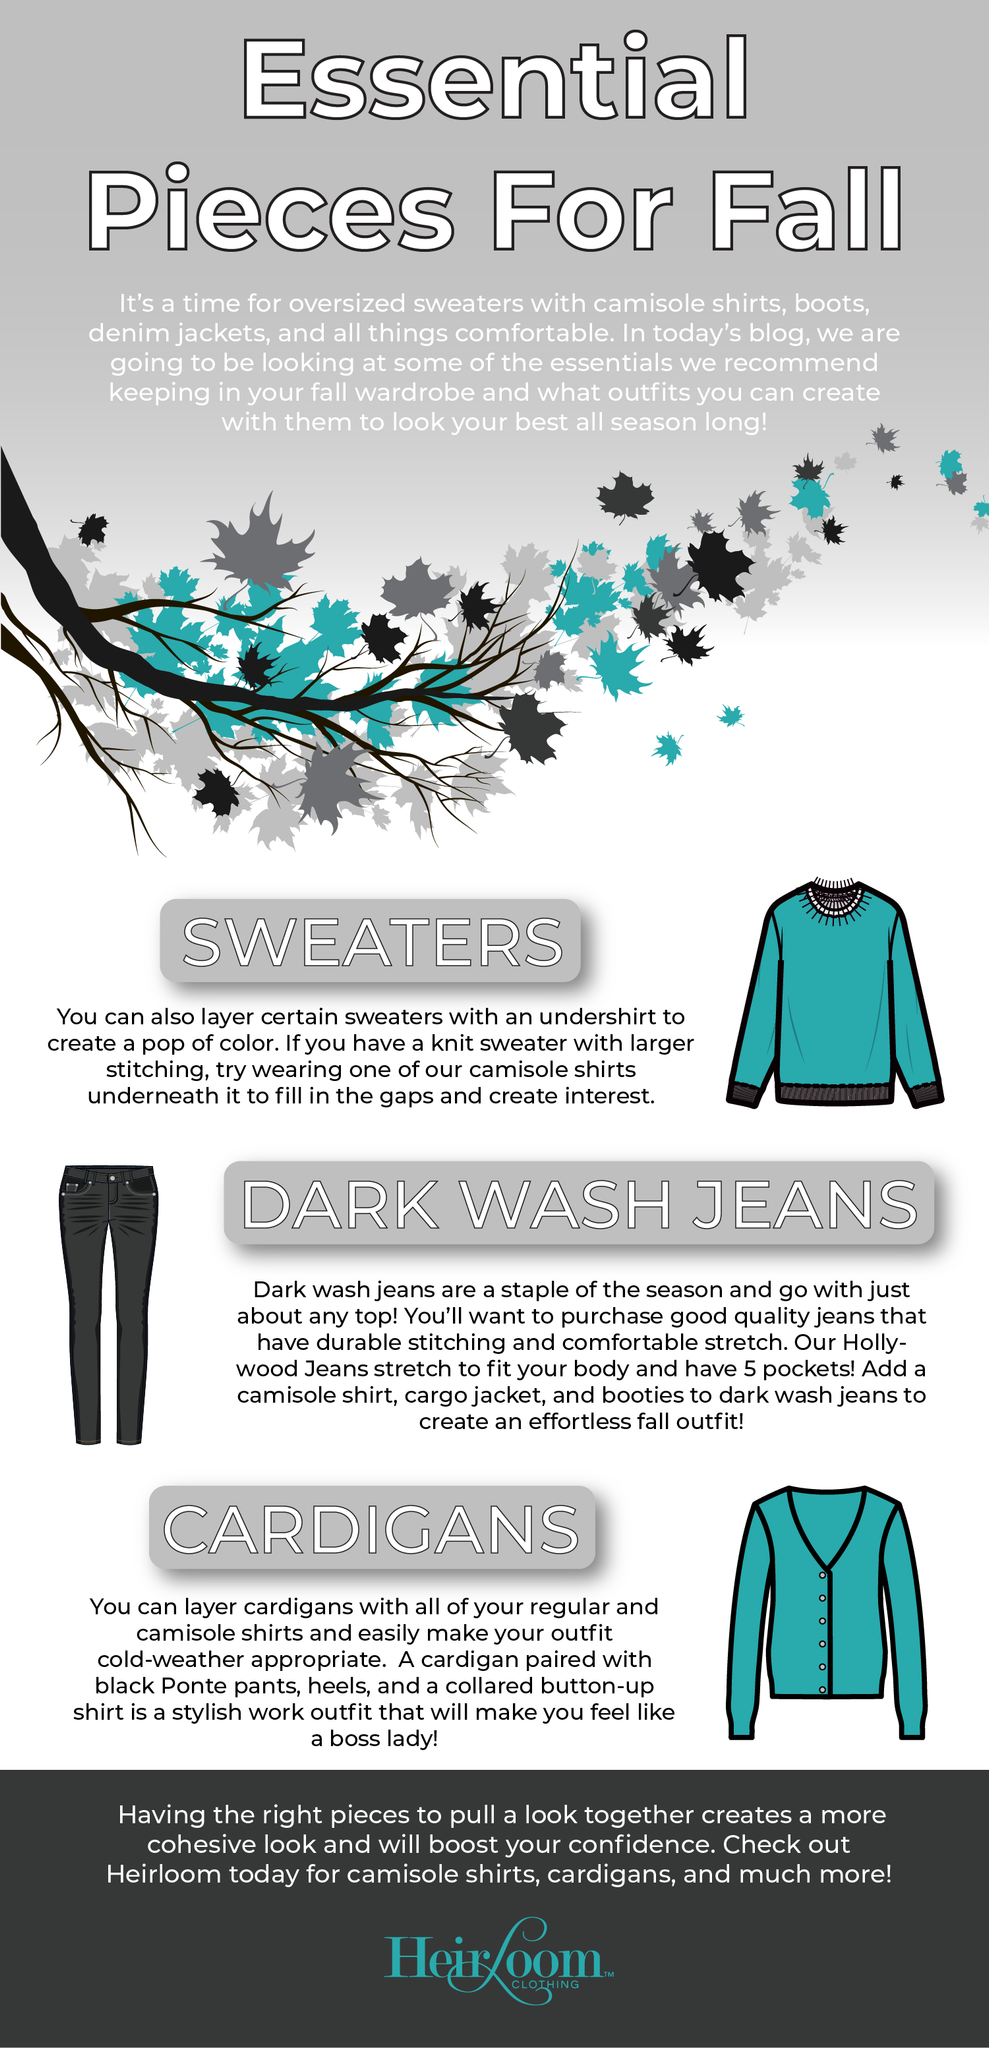 Essential Pieces for Fall – Heirloom Clothing